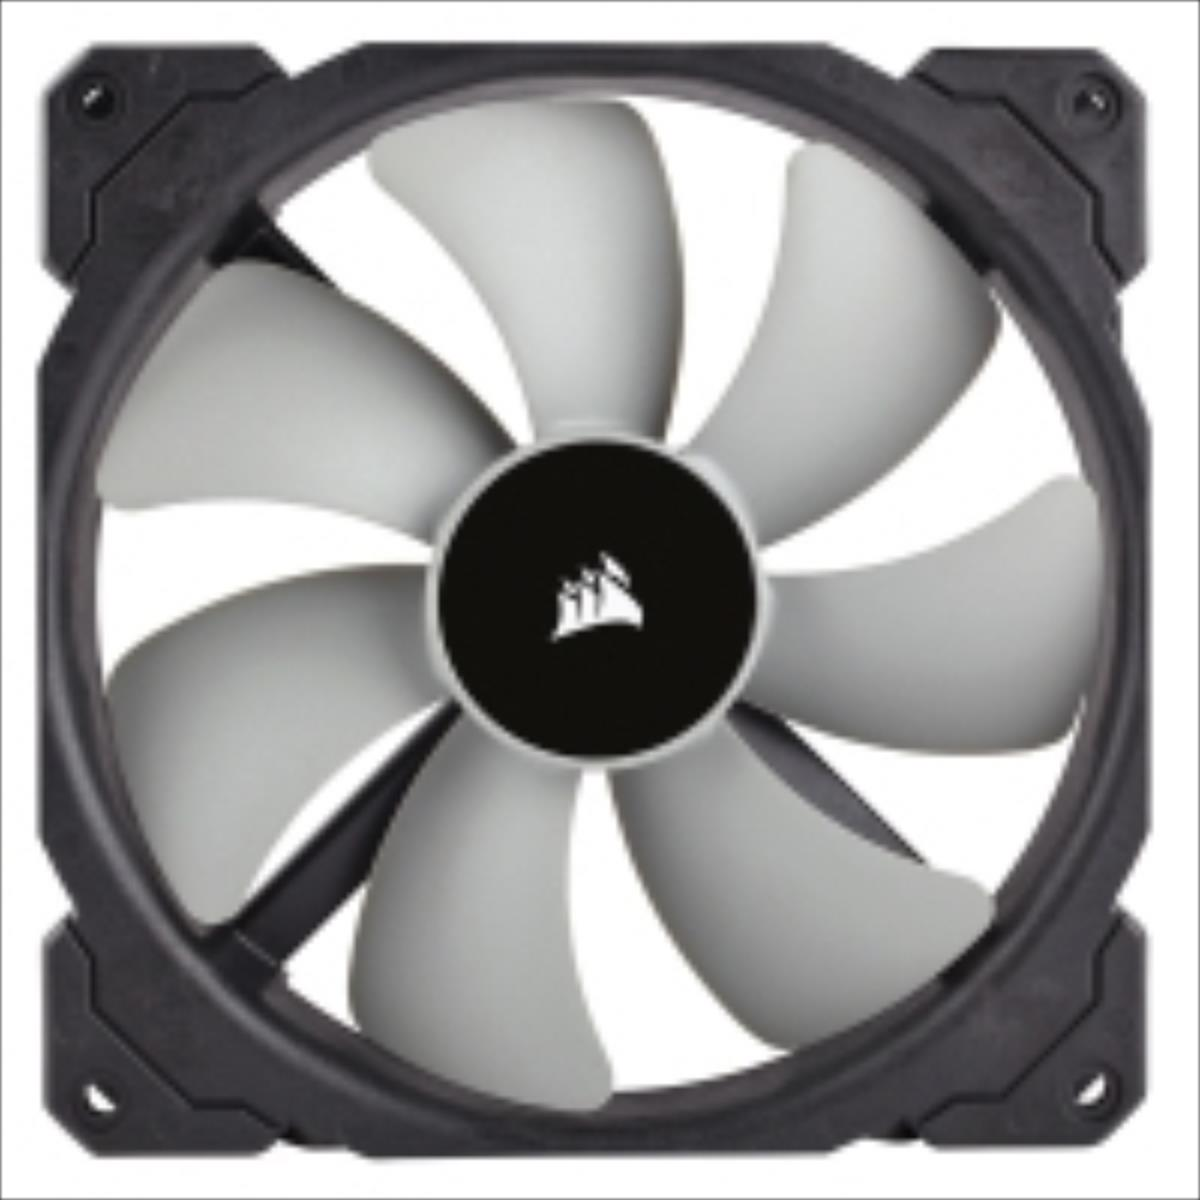 Corsair Air Series ML140 Magnetic Levitation Fan, 140mm ventilators